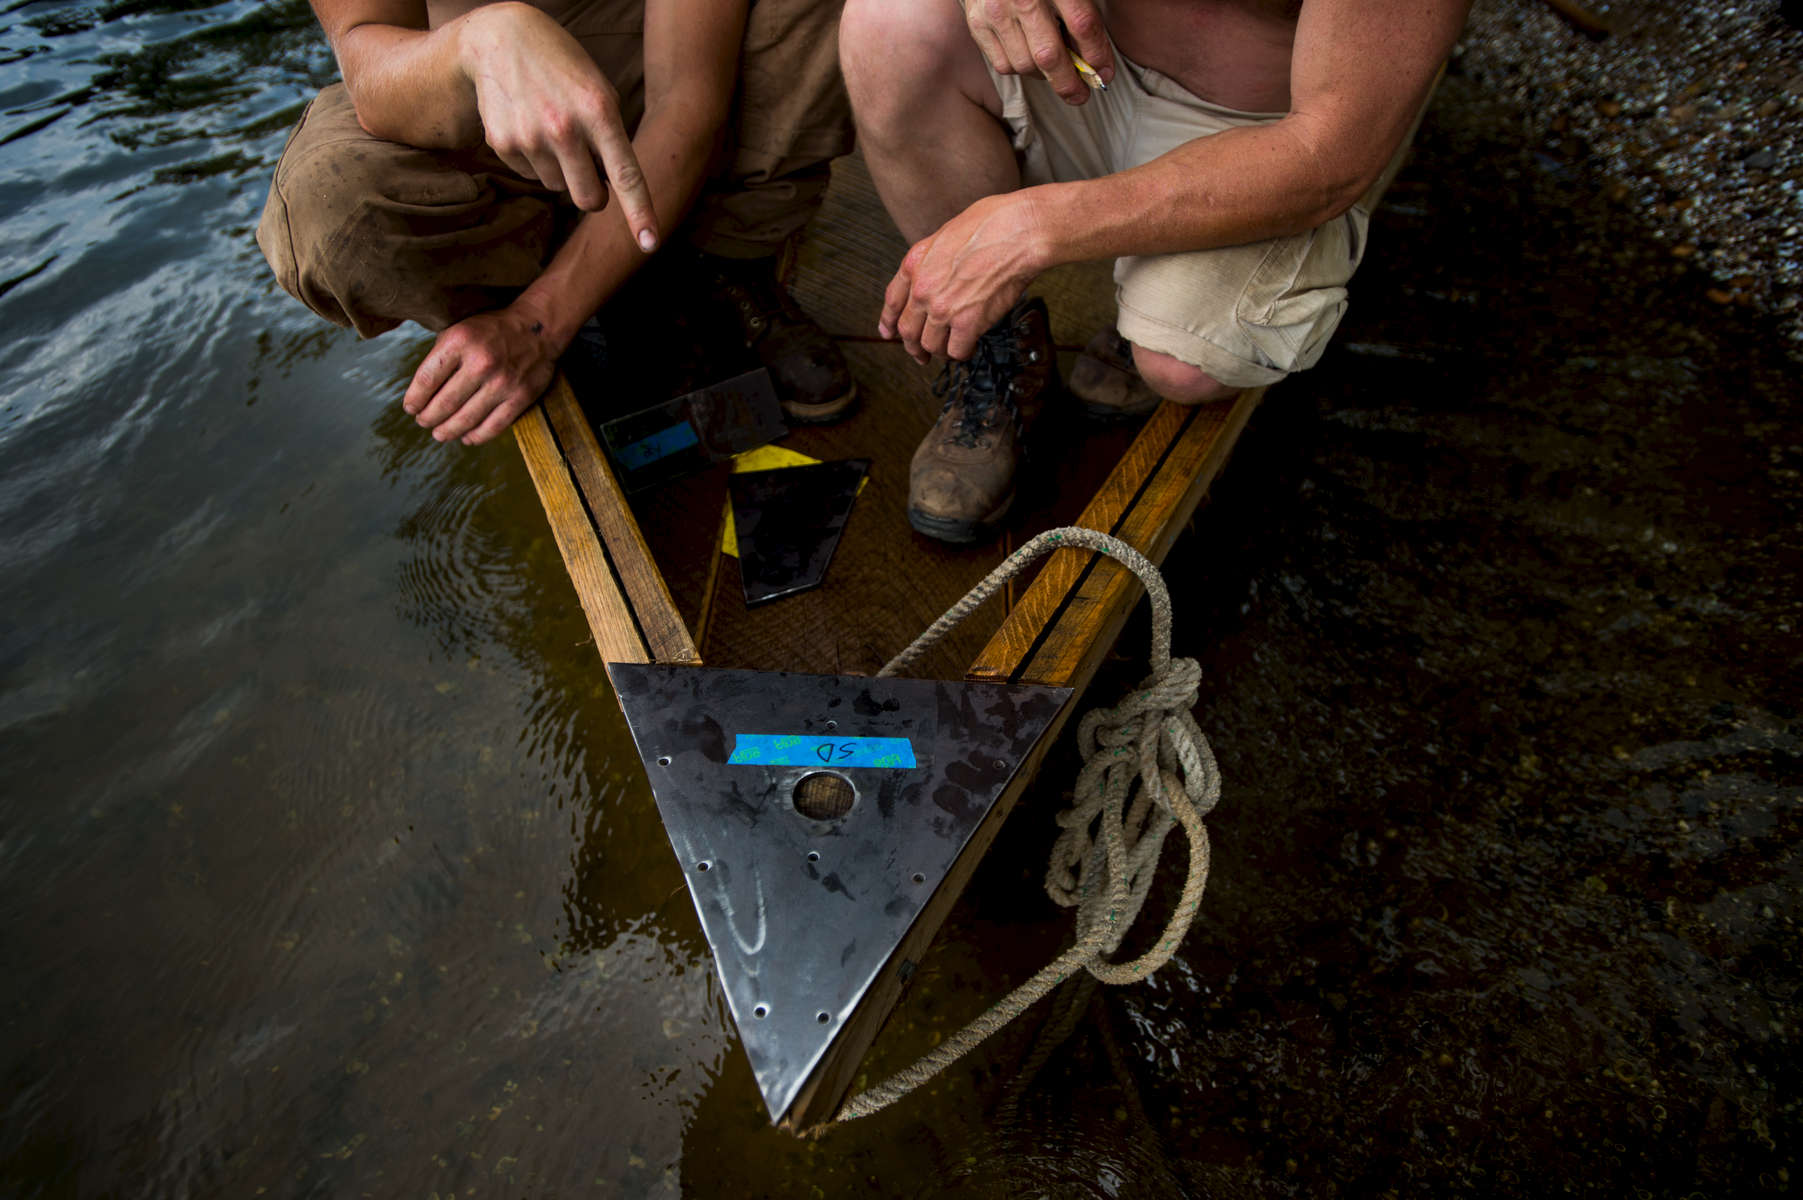 Isaac Schumacher and his father, Robert, set the sweep mount on the Lizzie Langley, a batteau they've been building since January. {quote}I've definitely spent more time with Isaac working on the boat than I will floating on the boat, and I'm perfectly okay with that,{quote} Robert Schumacher said.